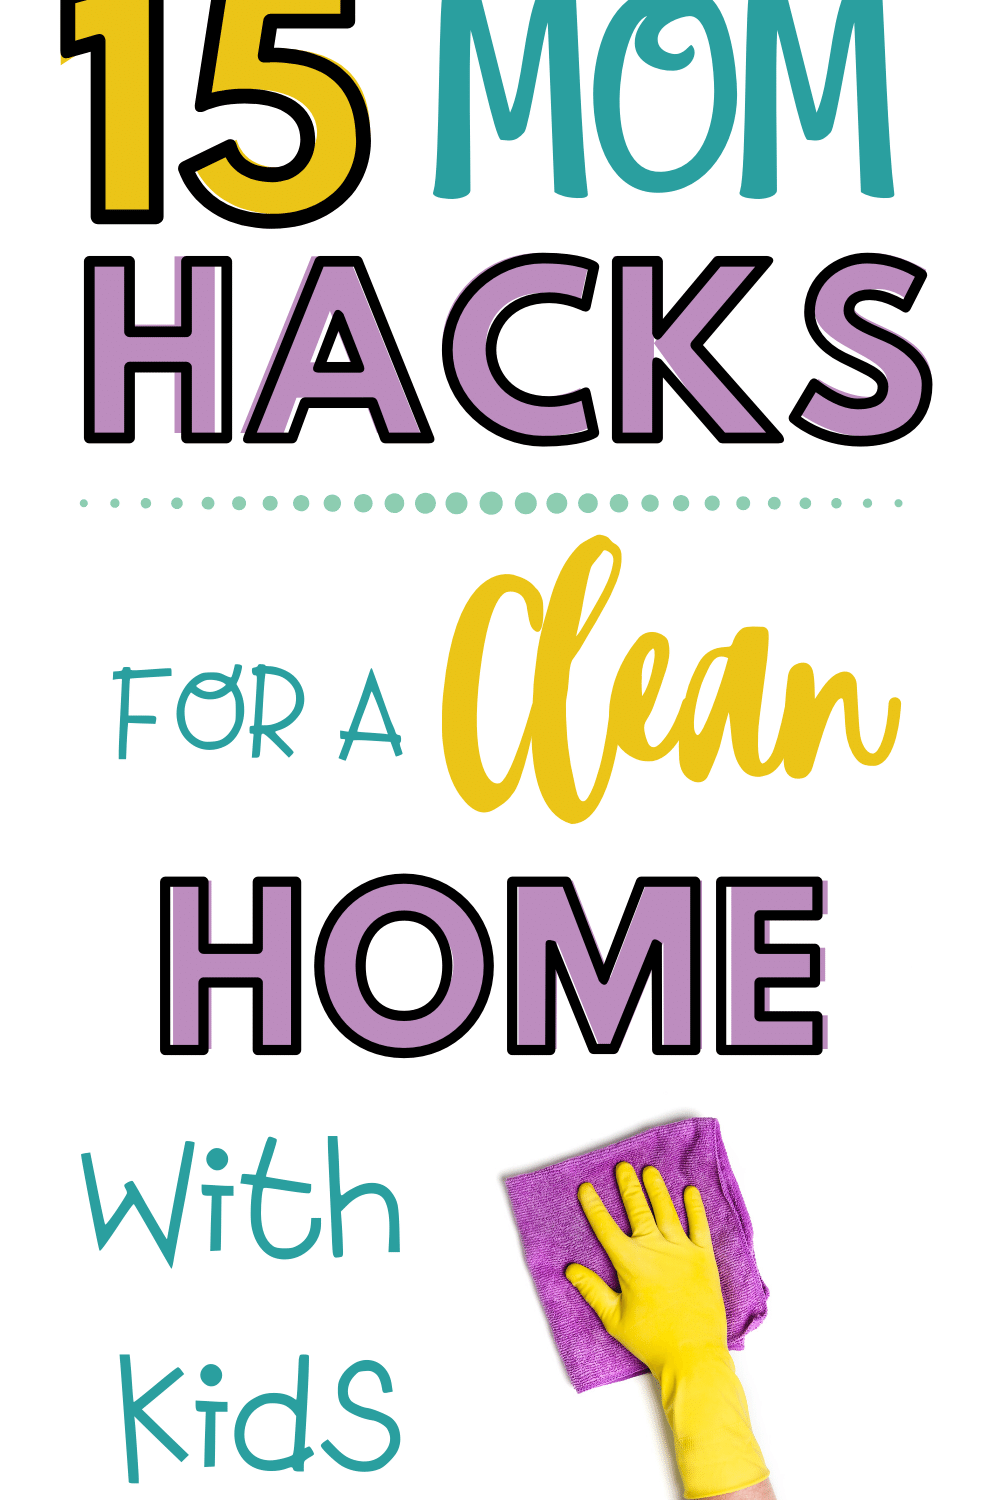 How To Have A Clean Home With Kids